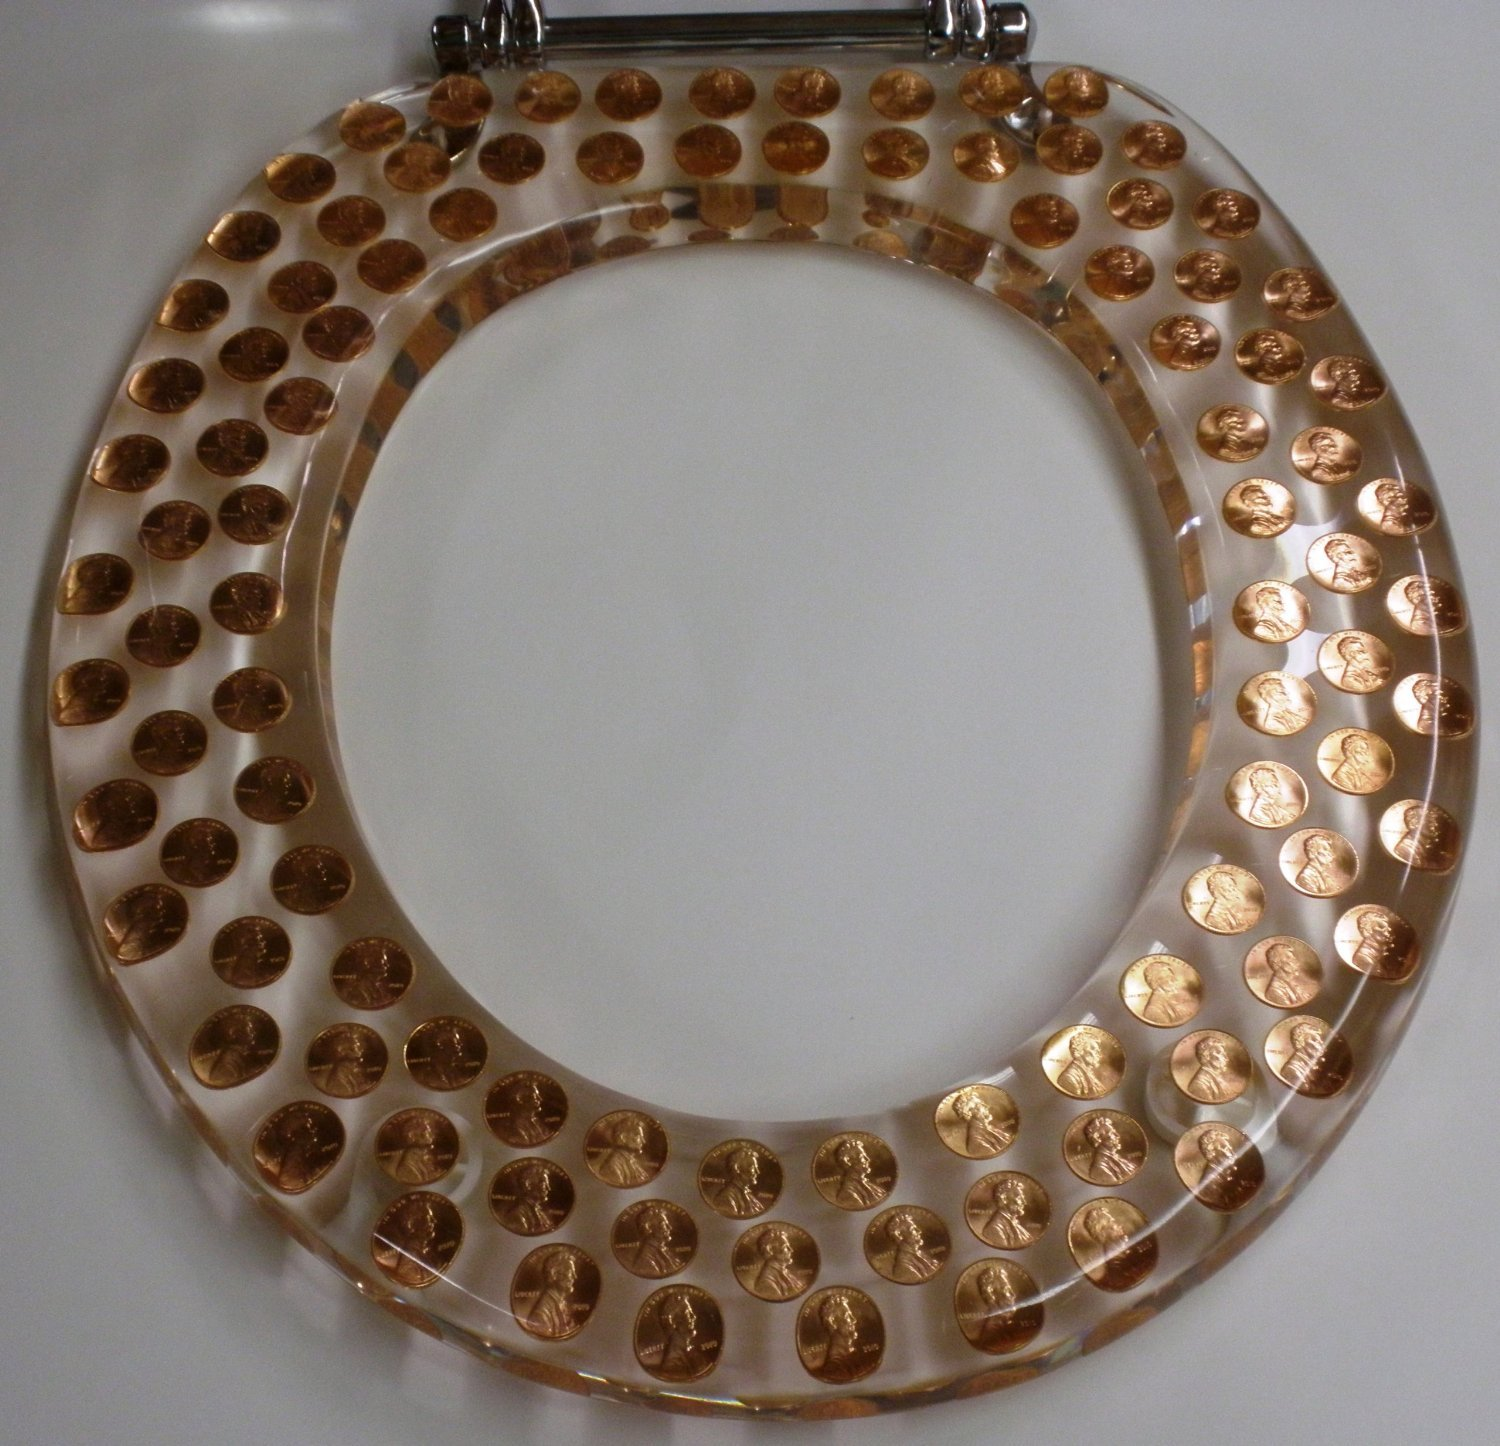 REAL U.S. PENNIES COINS MONEY LUCITE RESIN TOILET SEAT , Standard Size Round Penny Toilet Seat (14.5'' x16'')